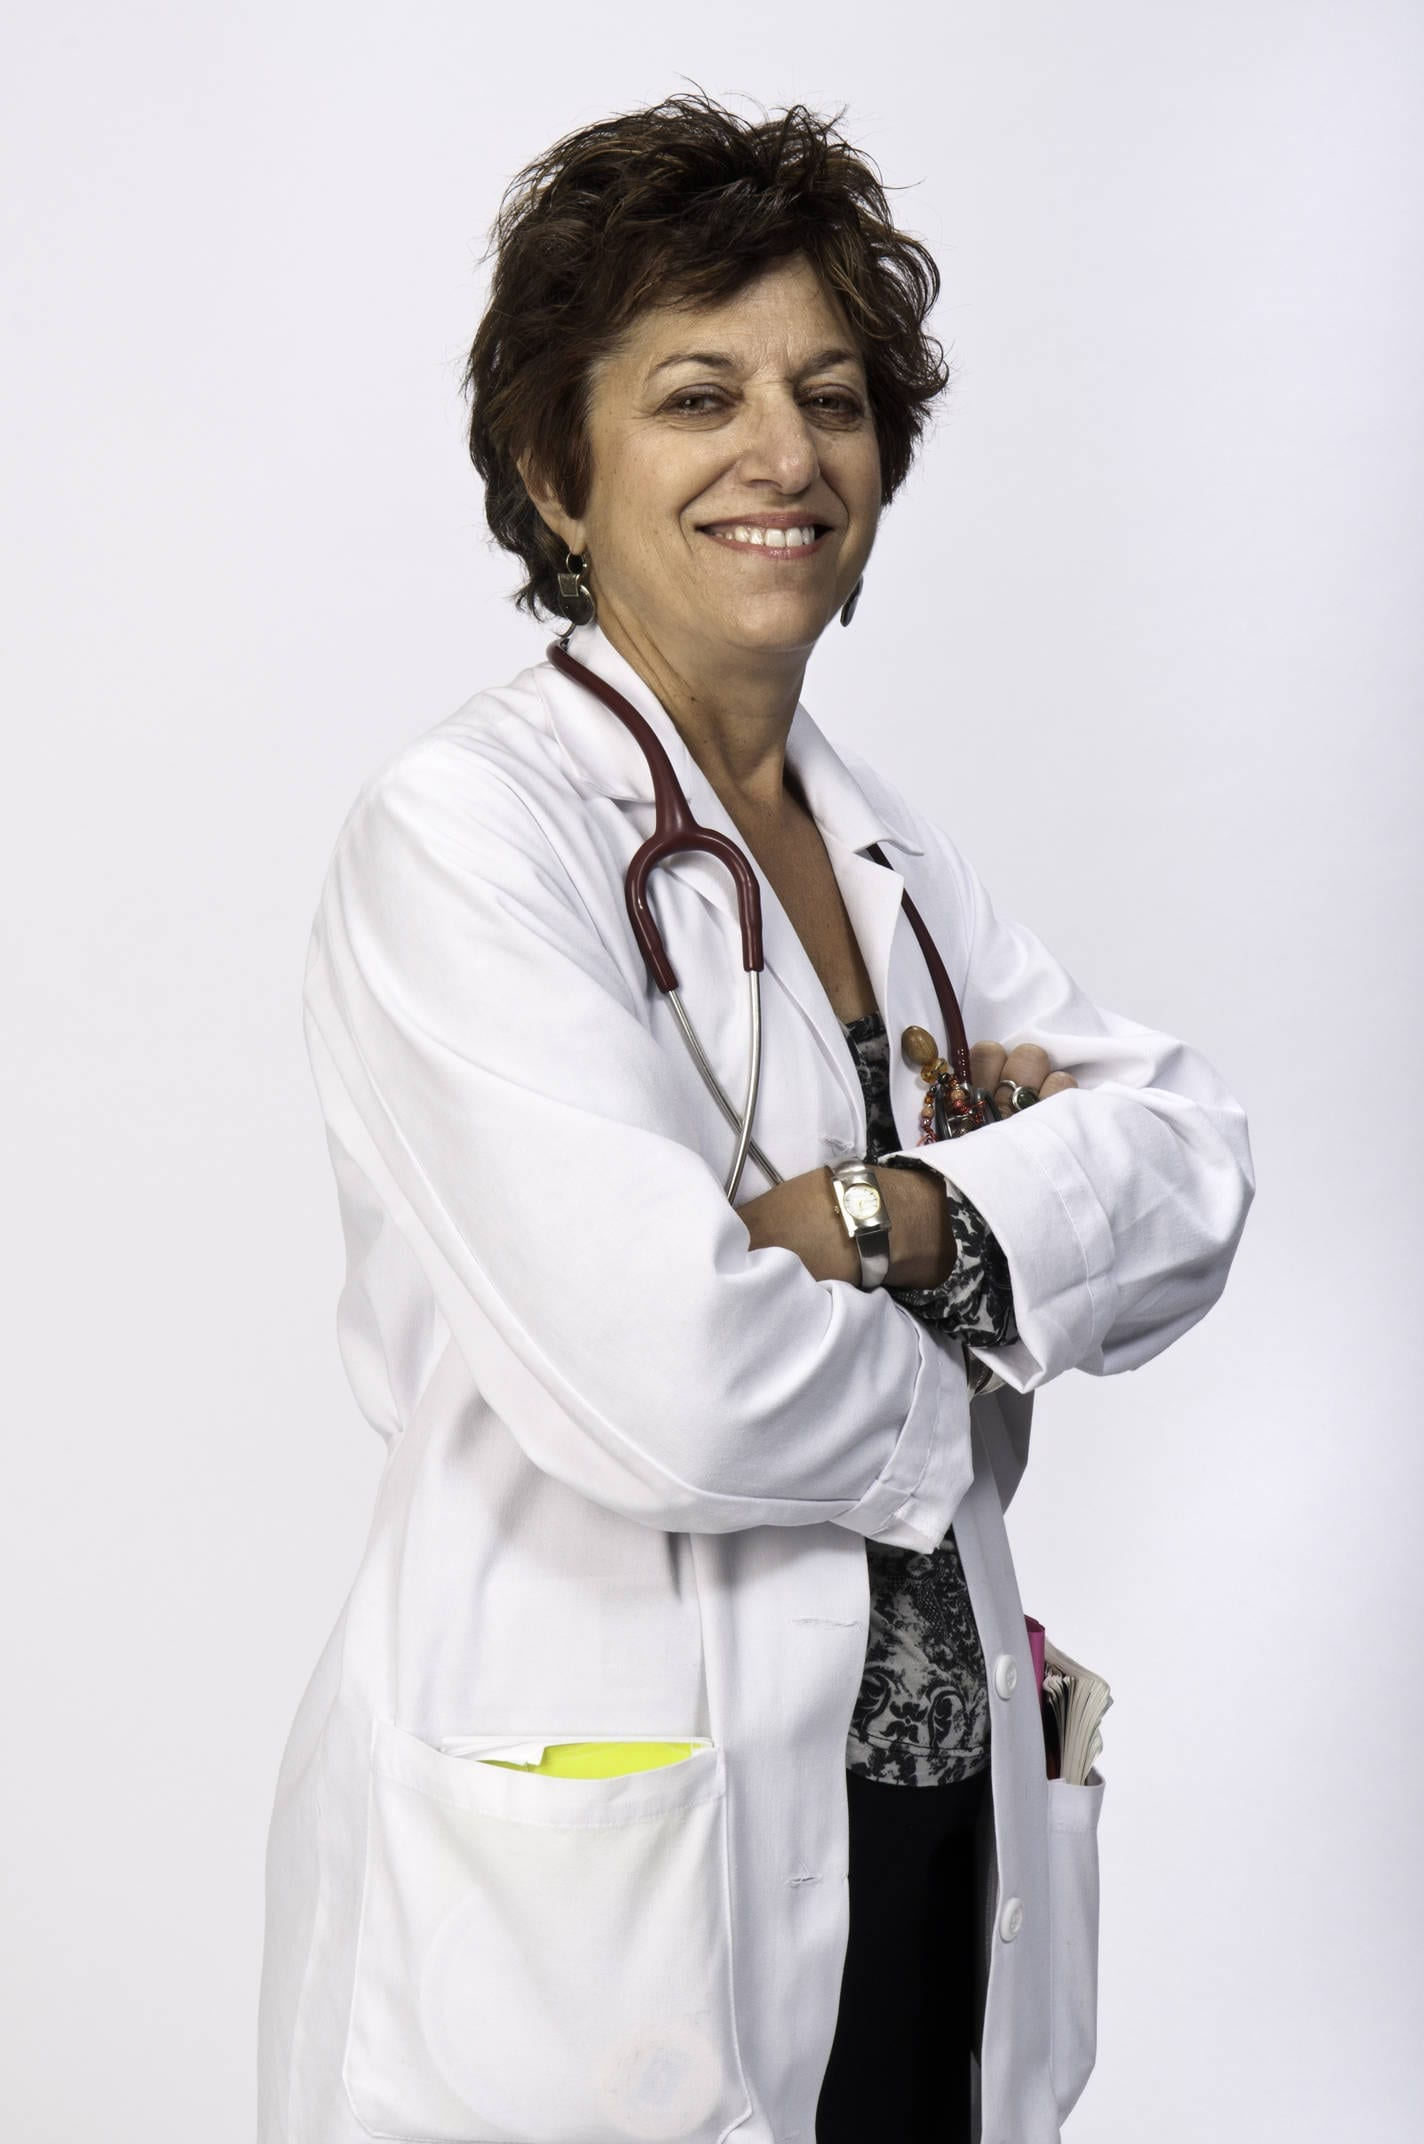 Image of Donna Torrisi, FPCN Network Executive Director and Nurse Practitioner